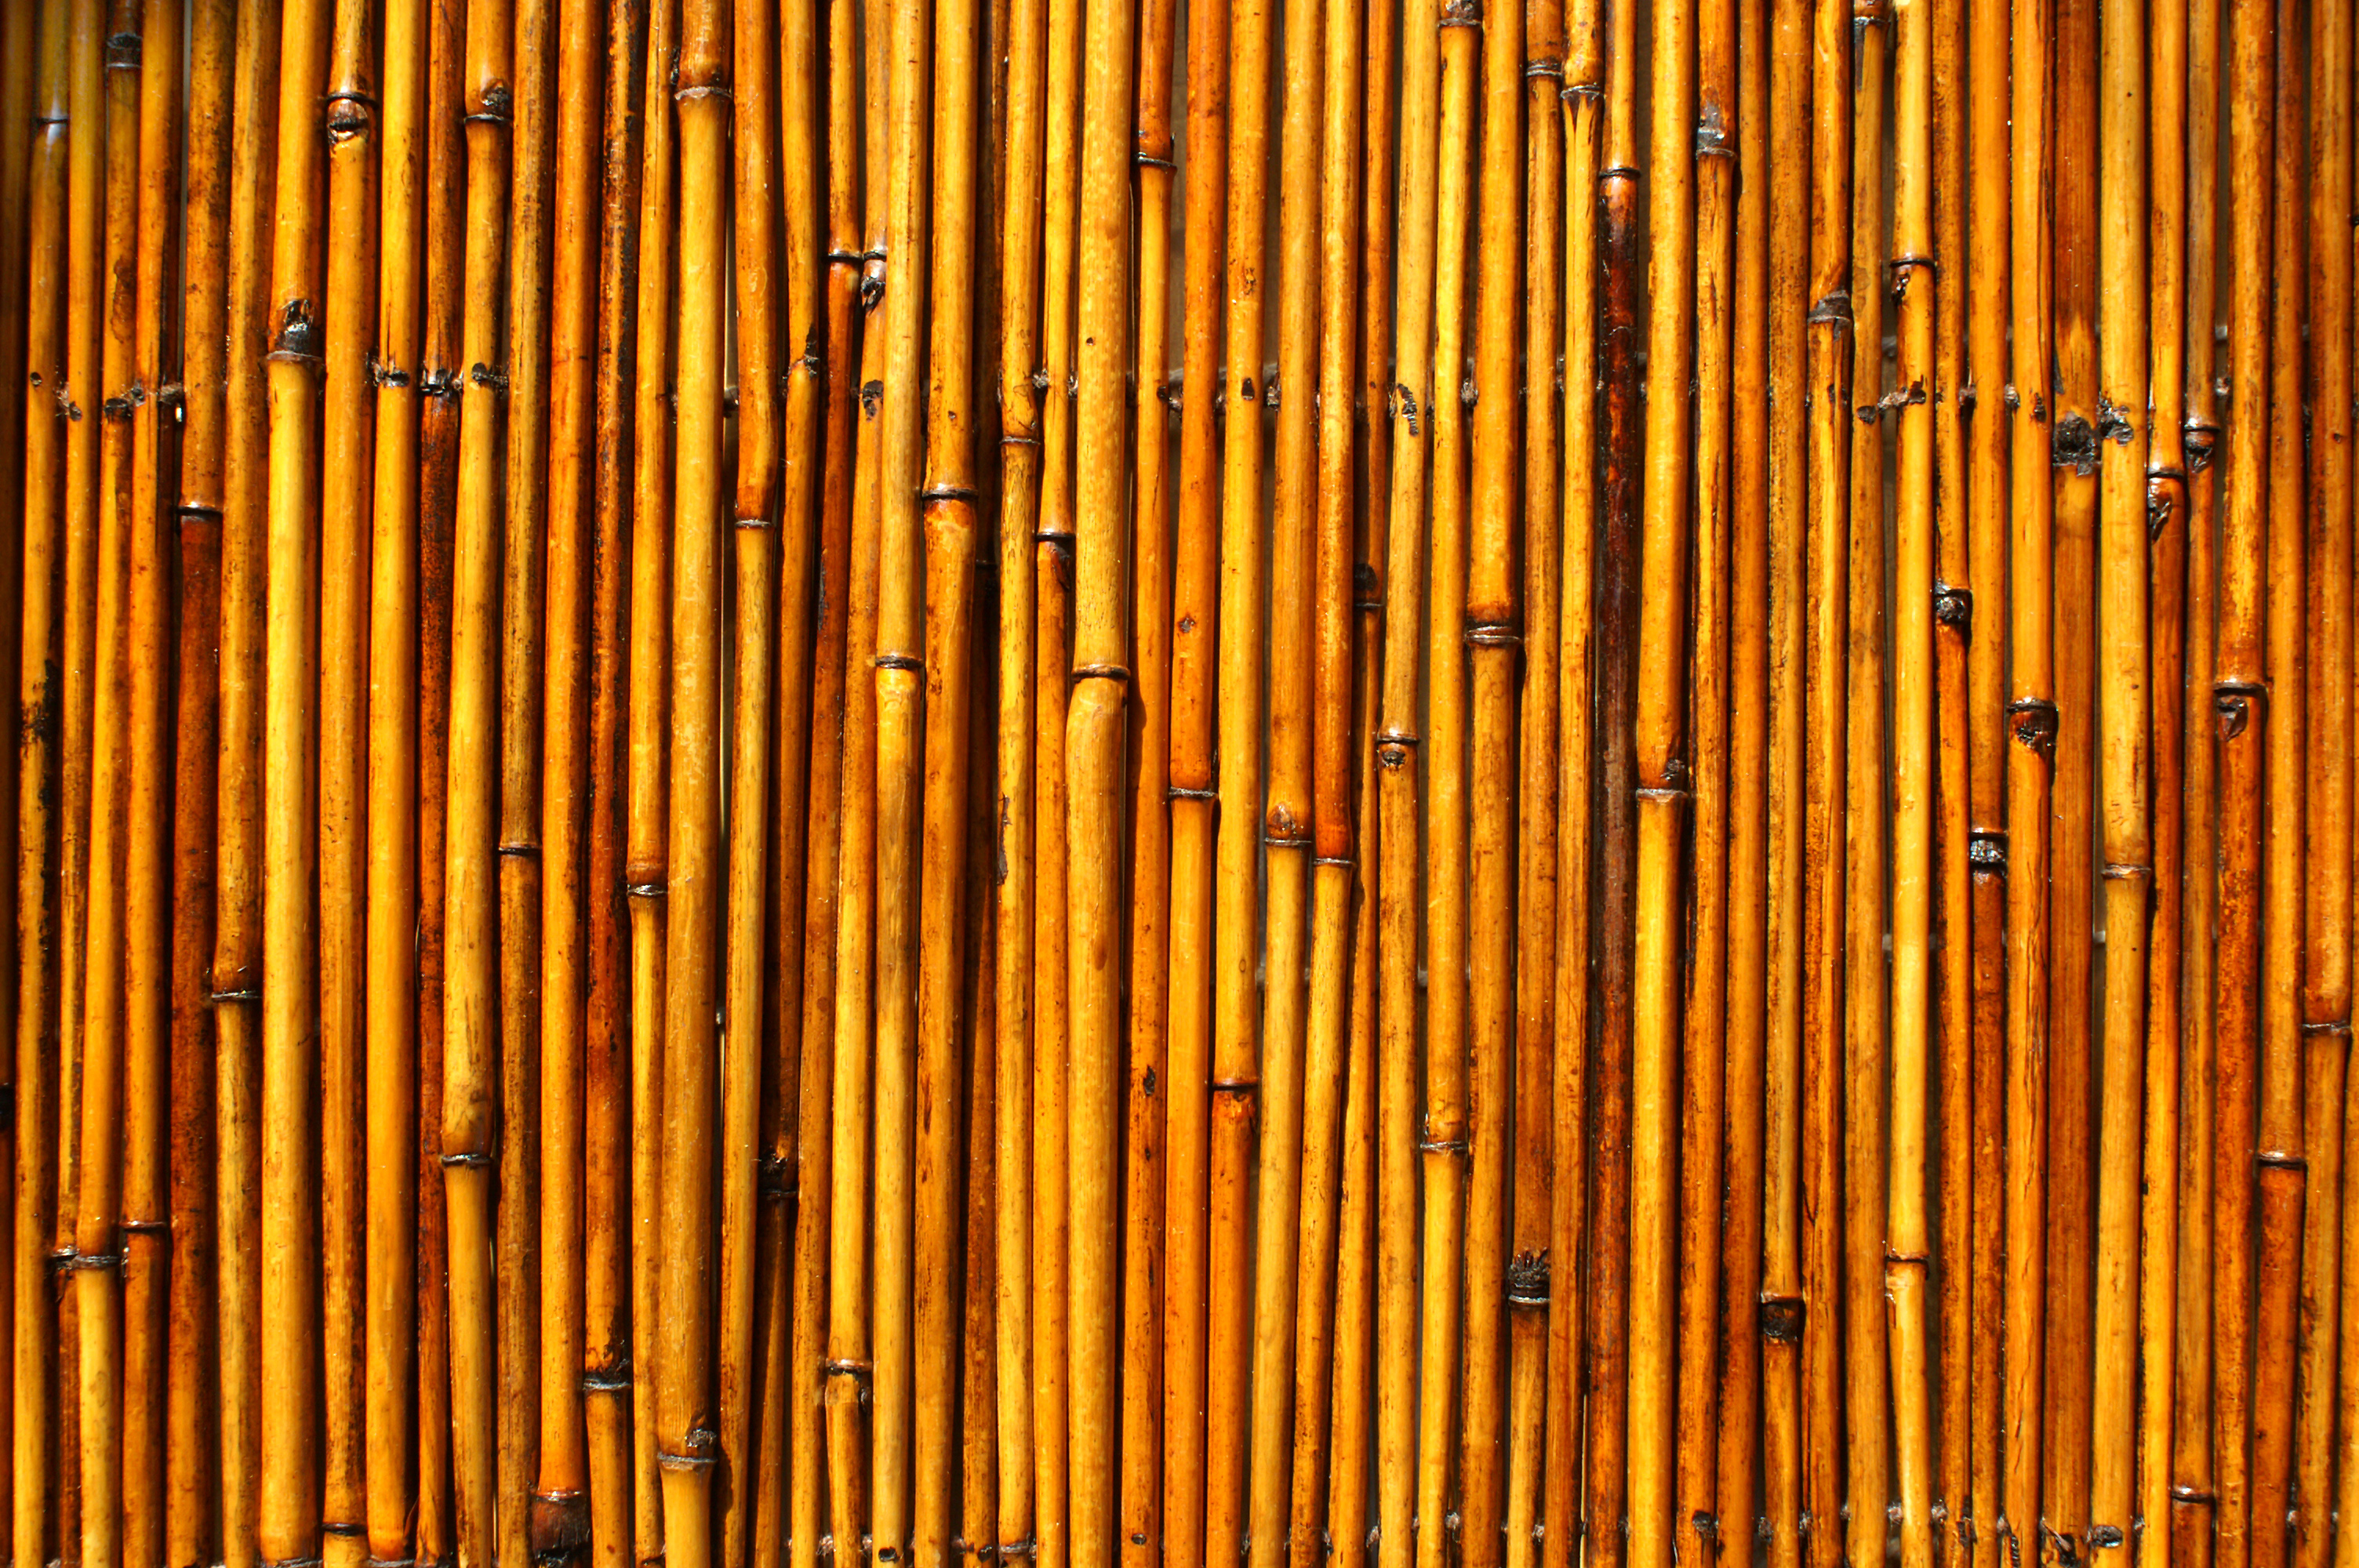 Bamboo texture, Bamboo, Texture, Wood, Wooden, HQ Photo